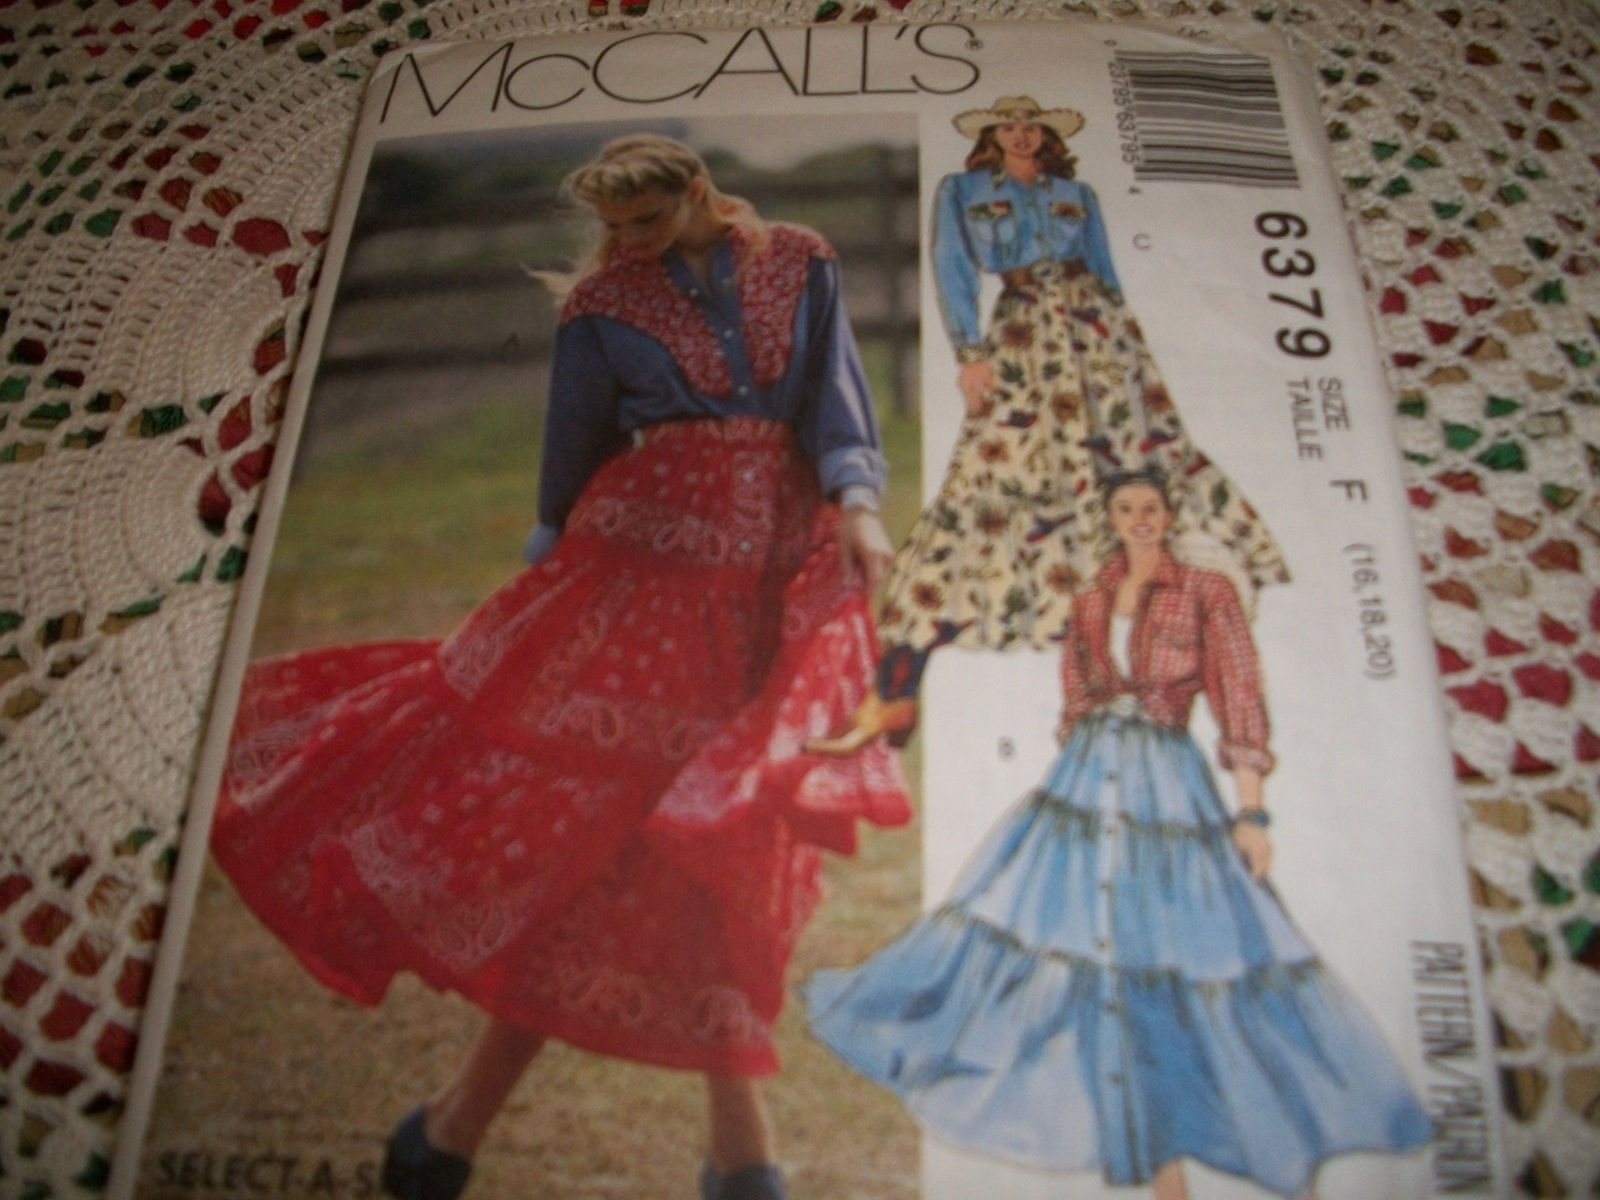 McCall's 6379 Misses' Shirt, Skirt & Belt Pattern